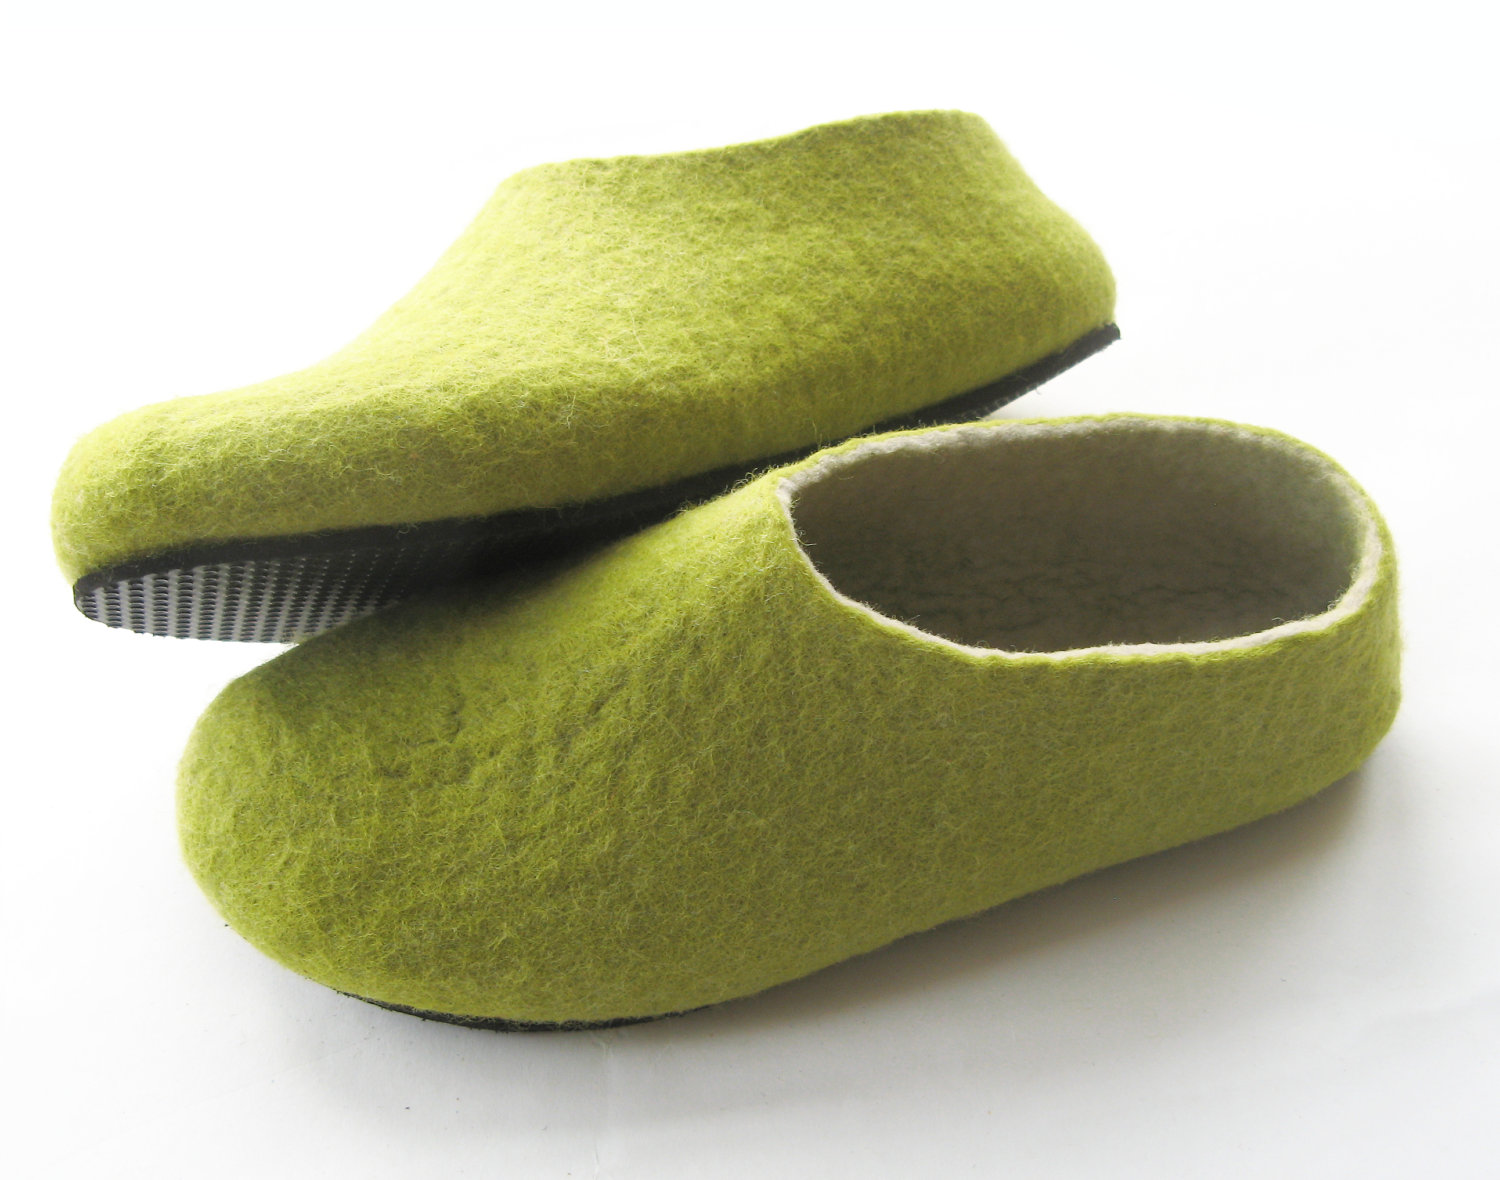 fe286e05bbdfd Felted Wool Slippers, Wool Boots, Cat Beds: Cold Feet? Why not to ...